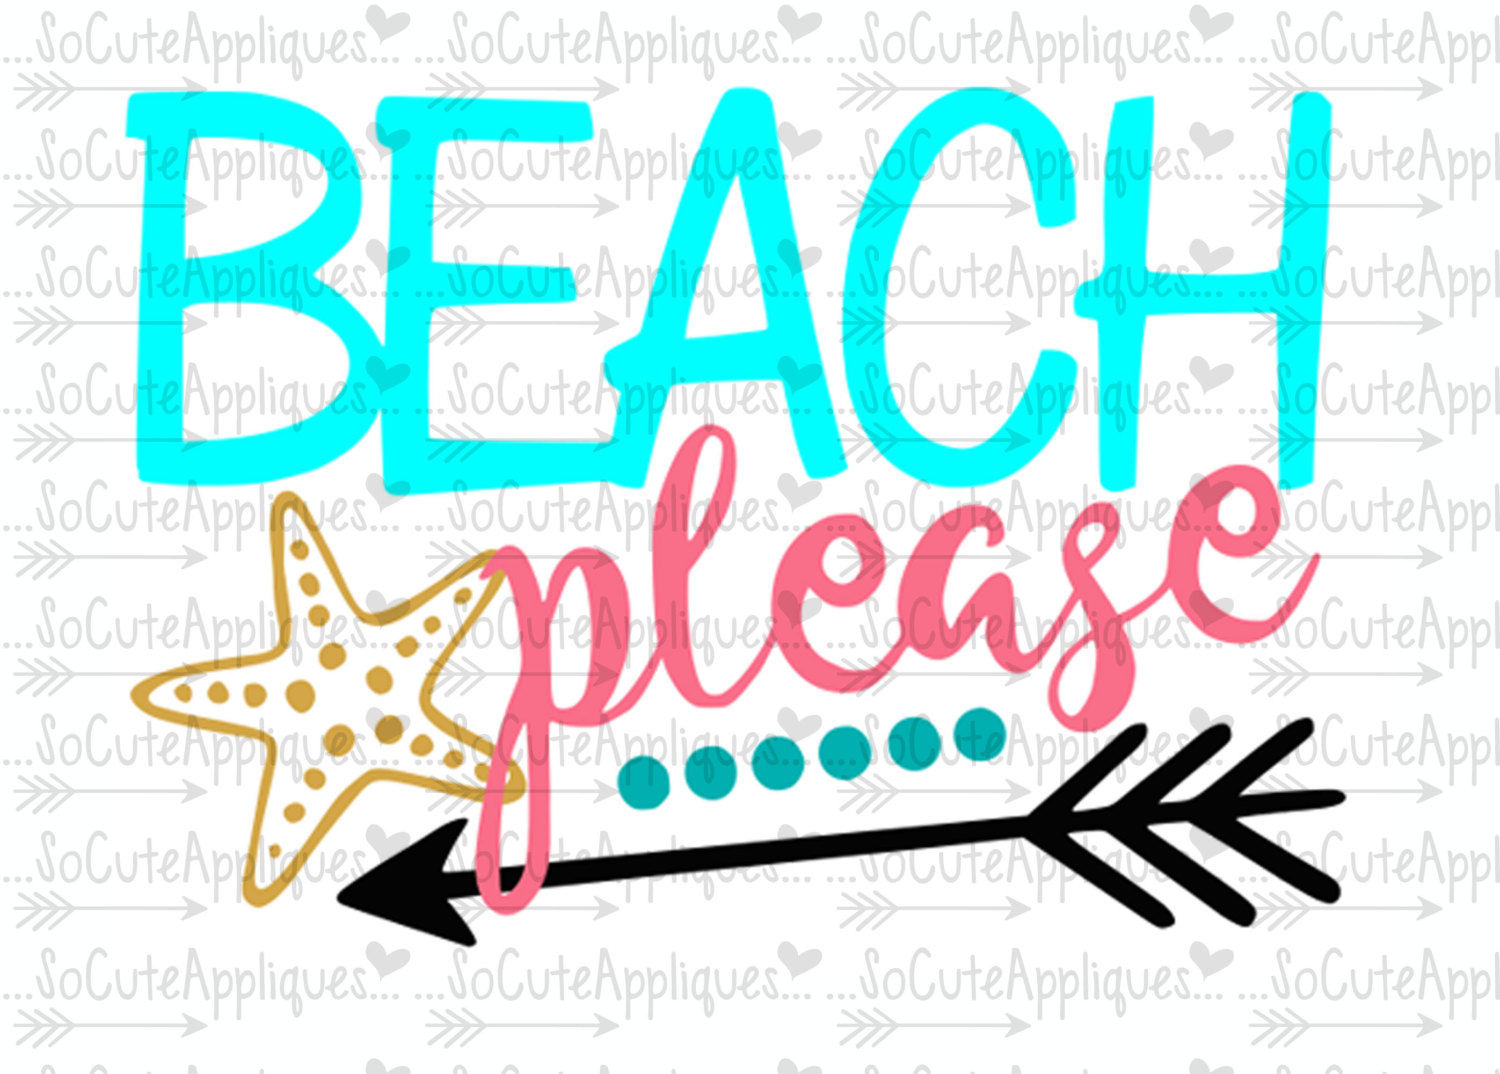 1500x1074 Beach Please, Nautical Svg, Cruise Svg, Socuteappliques